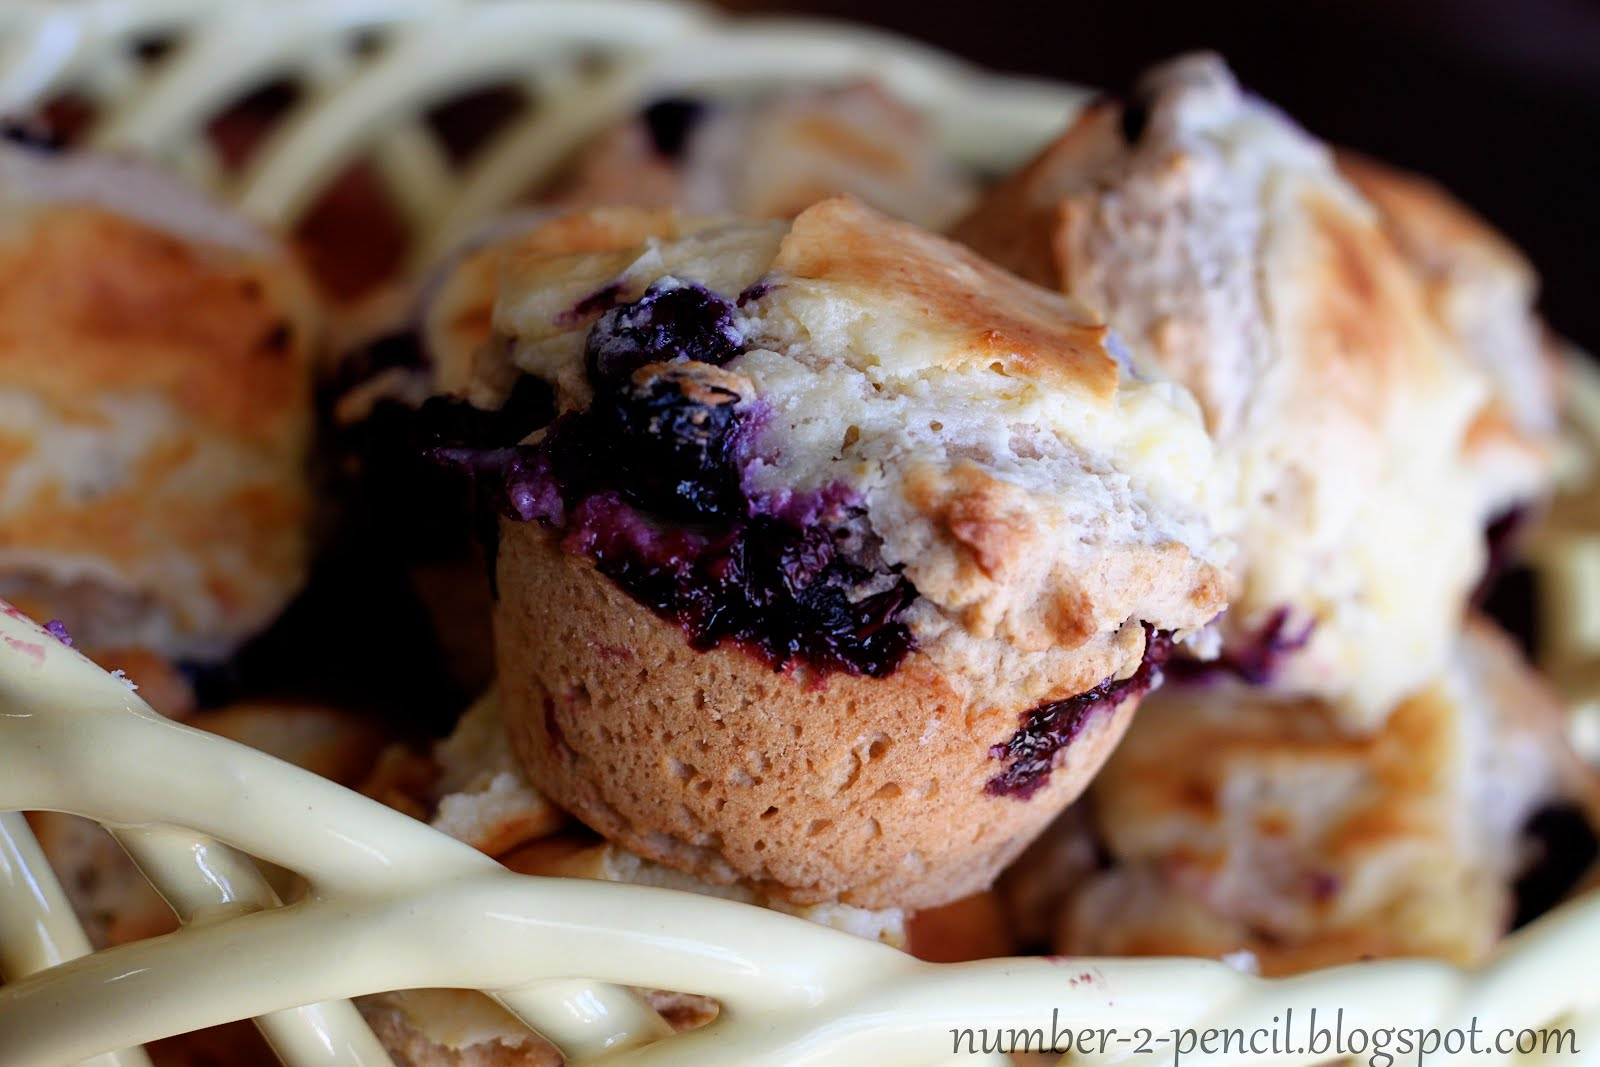 Blueberry Cream Cheese Muffins - No. 2 Pencil